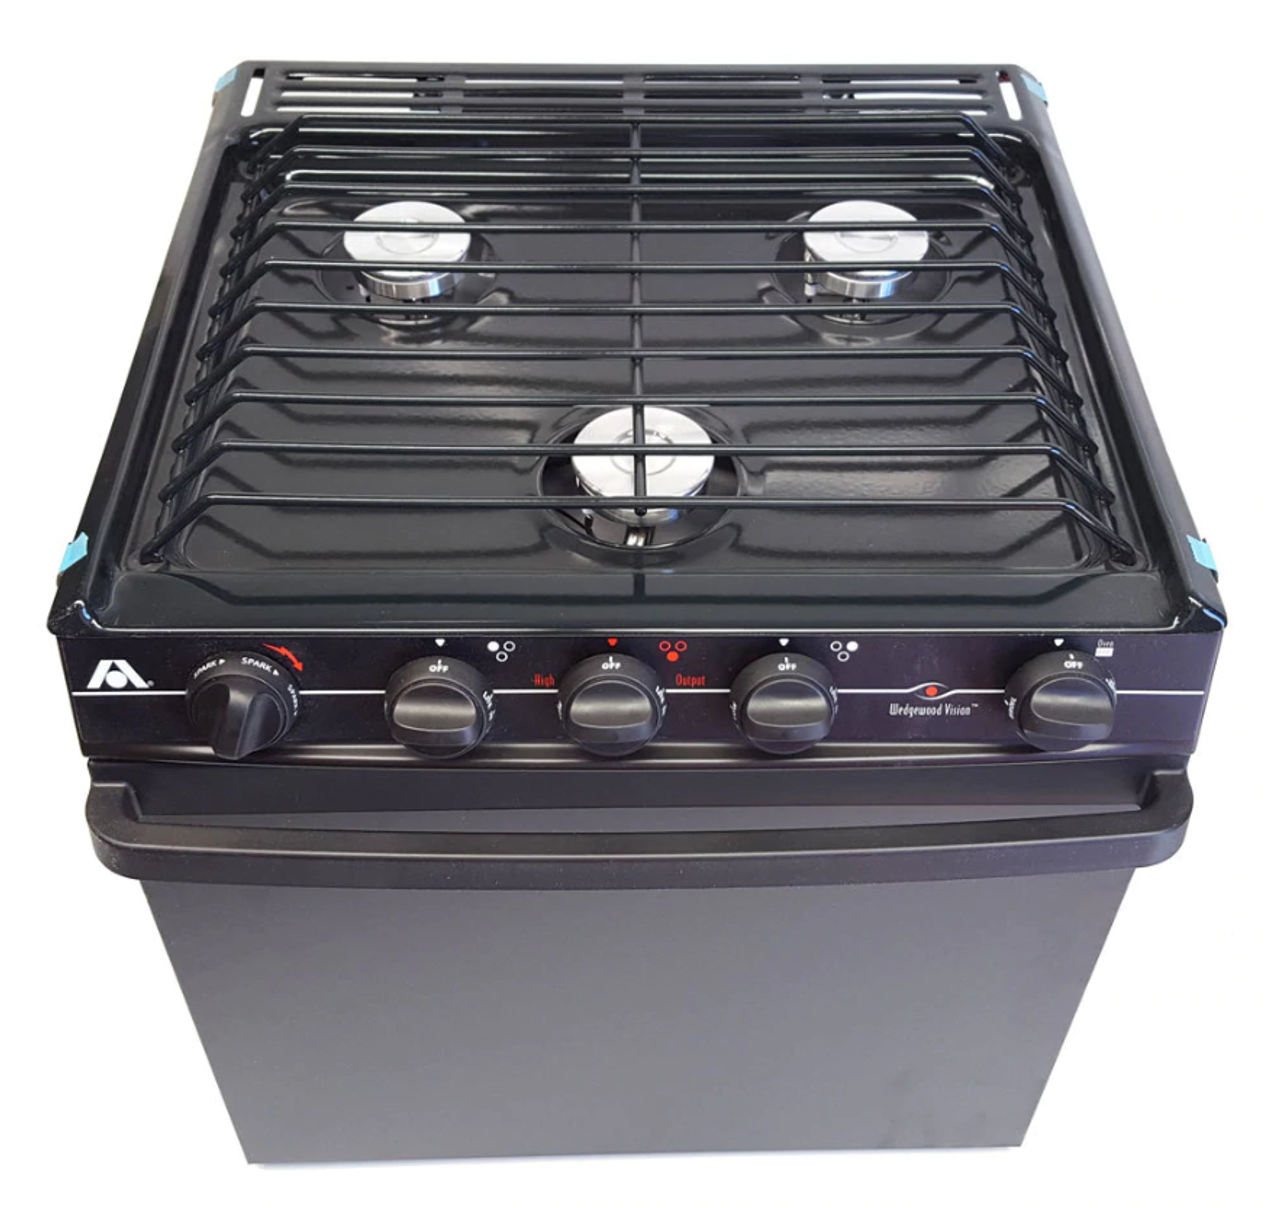 """3 BURNER DOMETIC (ATWOOD) RANGE 21"""" BLACK (07-1007) ANGLED FRONT VIEW"""